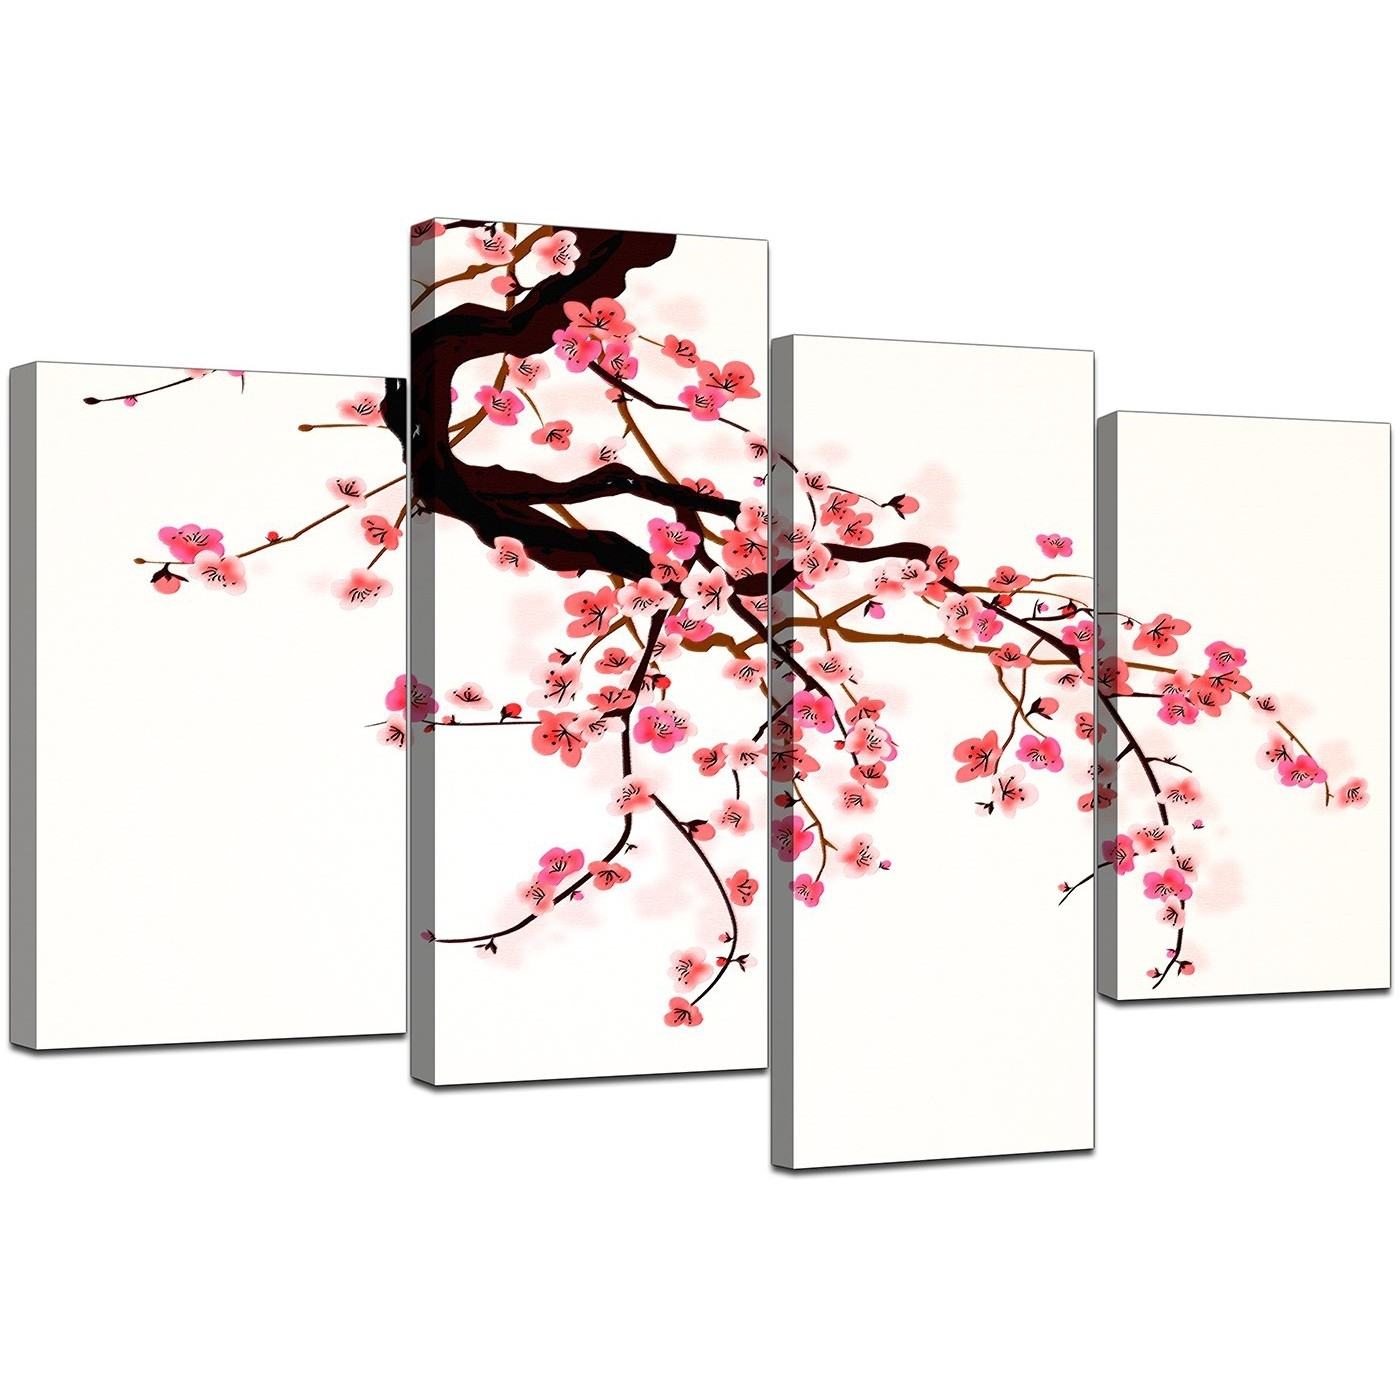 Canvas Prints Uk Of Cherry Blossom For Your Living Room – Set Of 4 In Most Current Cherry Blossom Wall Art (View 5 of 20)